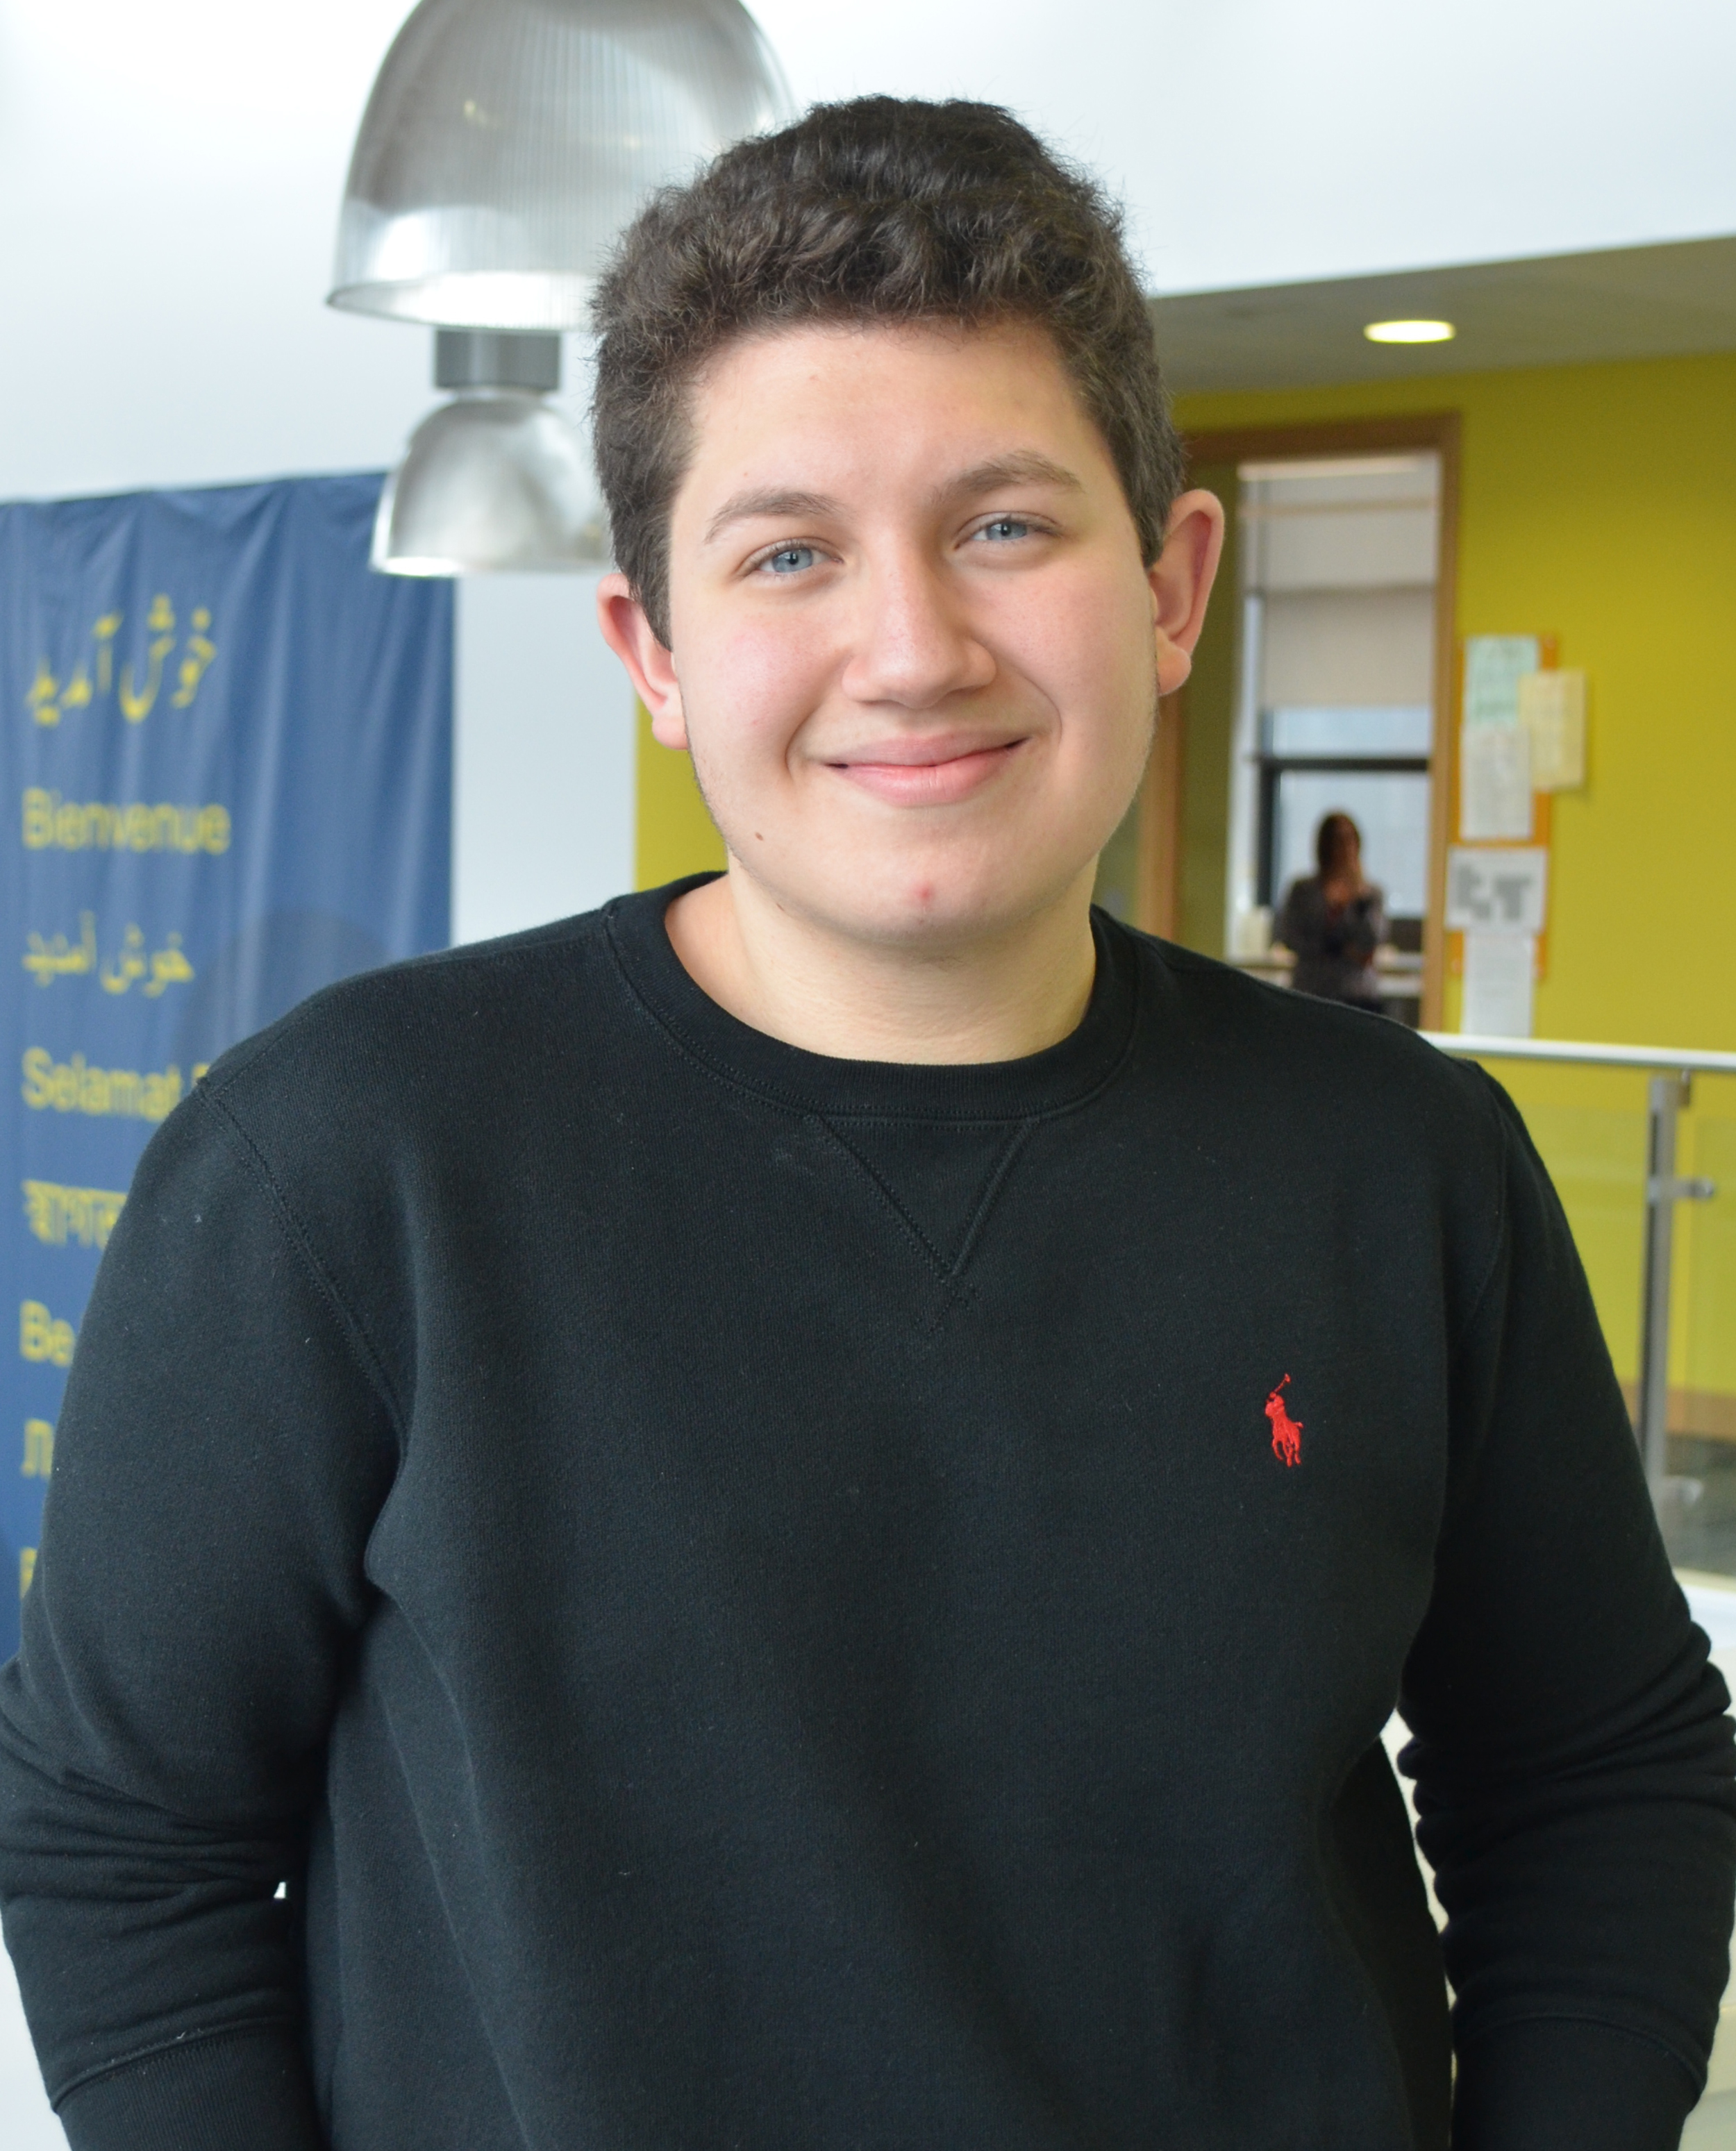 Photo of international student Majd at INTO Newcastle University